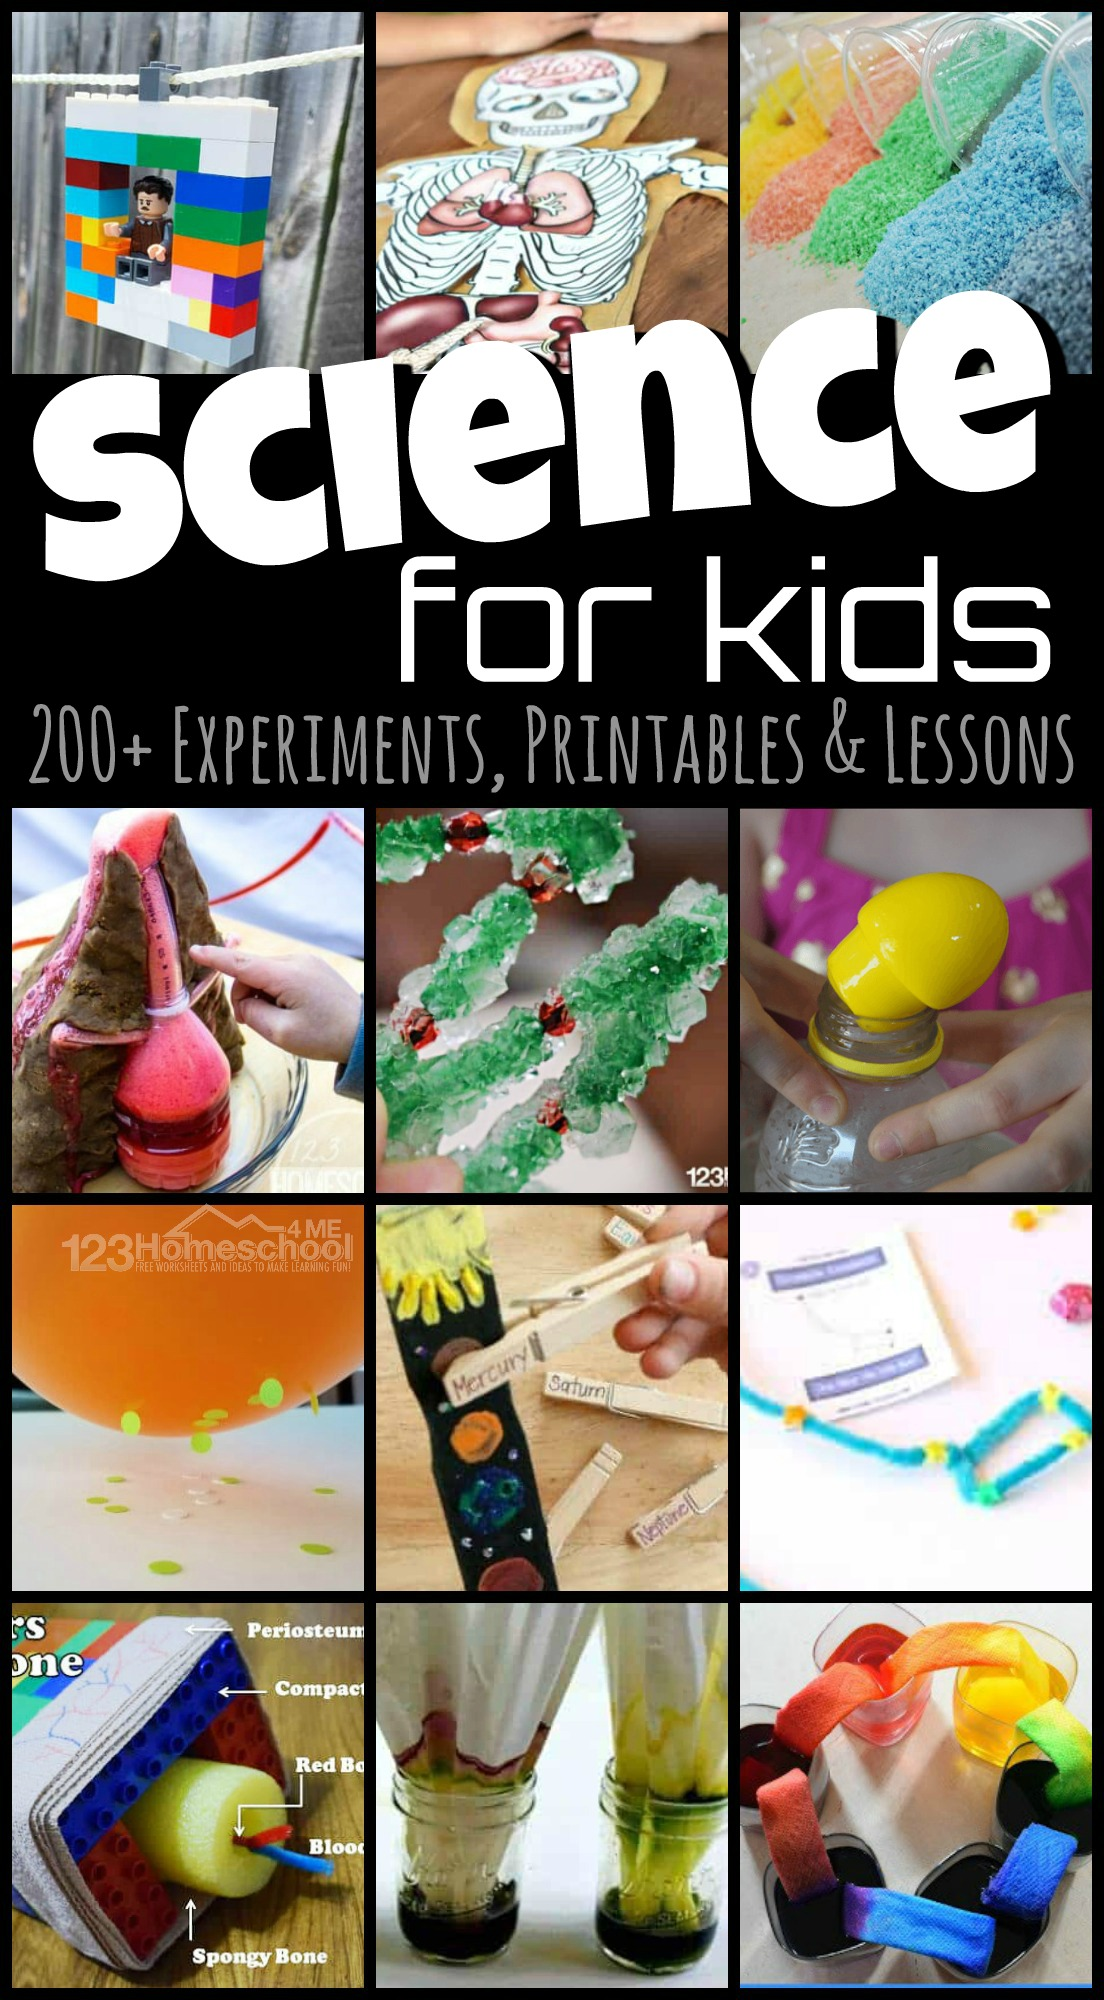 Science for Kids - over 200 fun, creative, and unique science experiments, science projects, science printables, and lessons for prek, kindergarten, 1st grade, 2nd grade, 3rd grade, 4th graders, and more #science #scienceexpeirments #scienceprojects #homeschool #scienceforkids